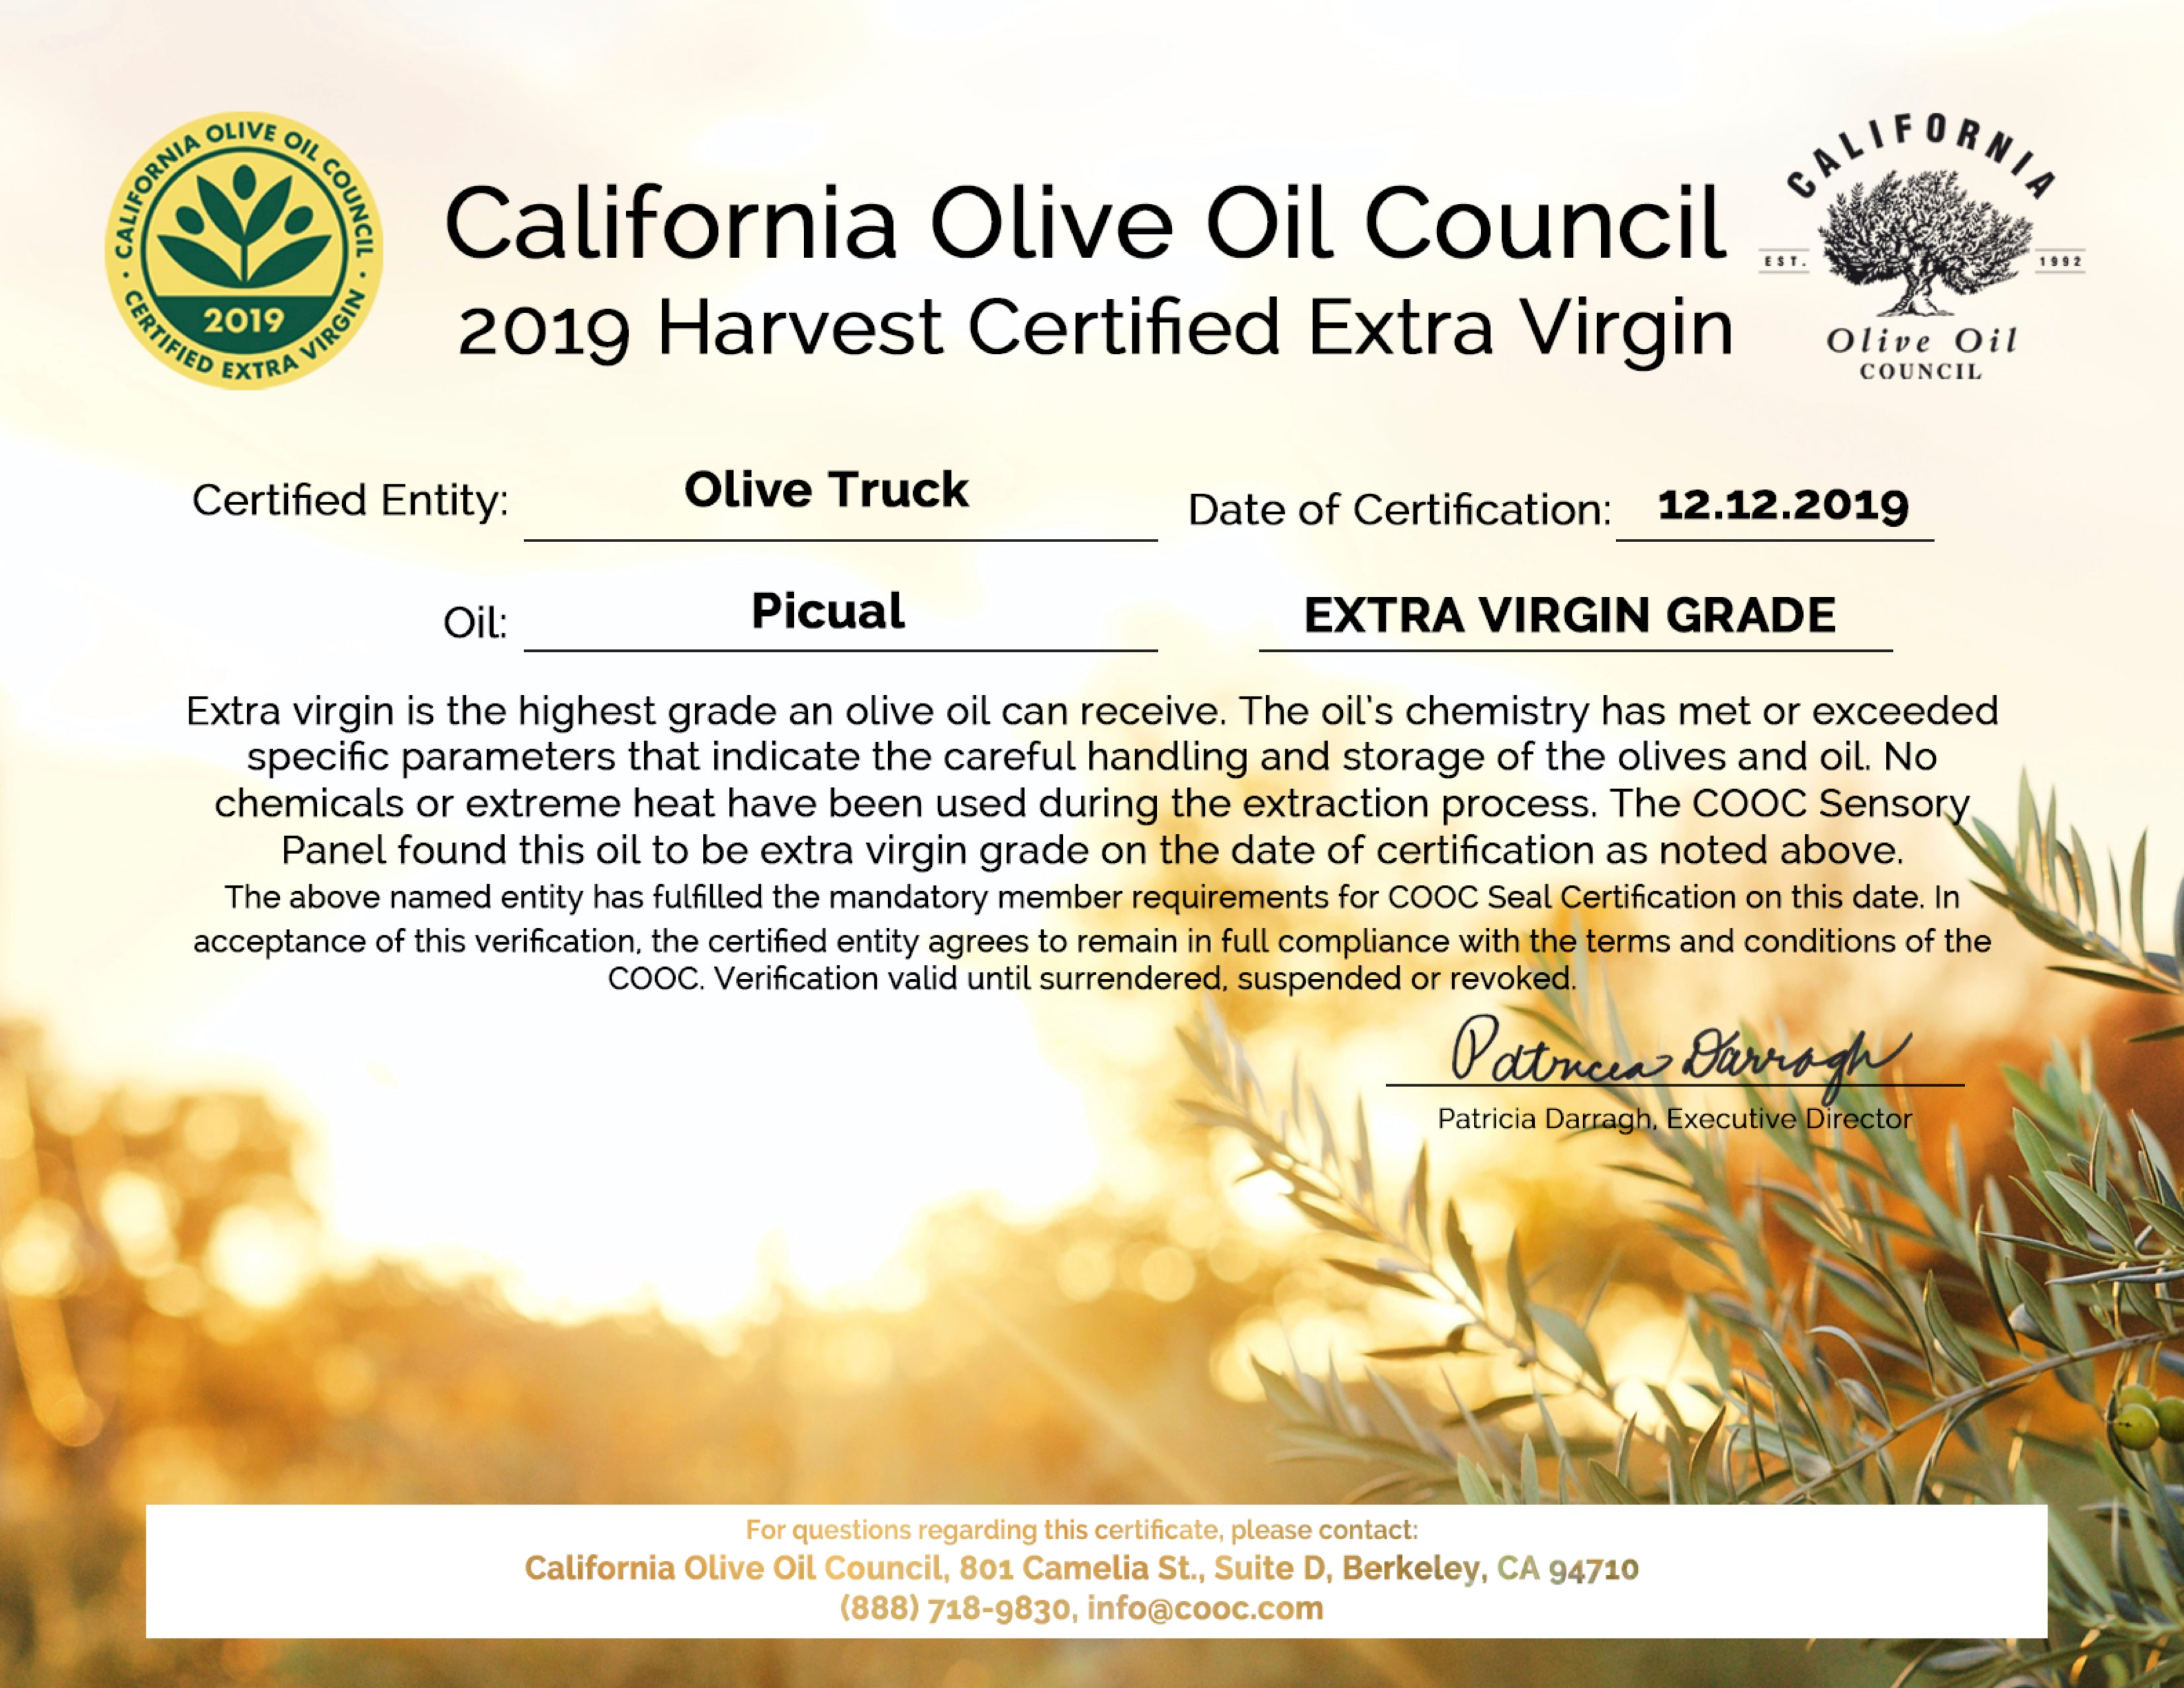 Picual - California Olive Oil Council, 2019 Harvest Certified Extra Virgin